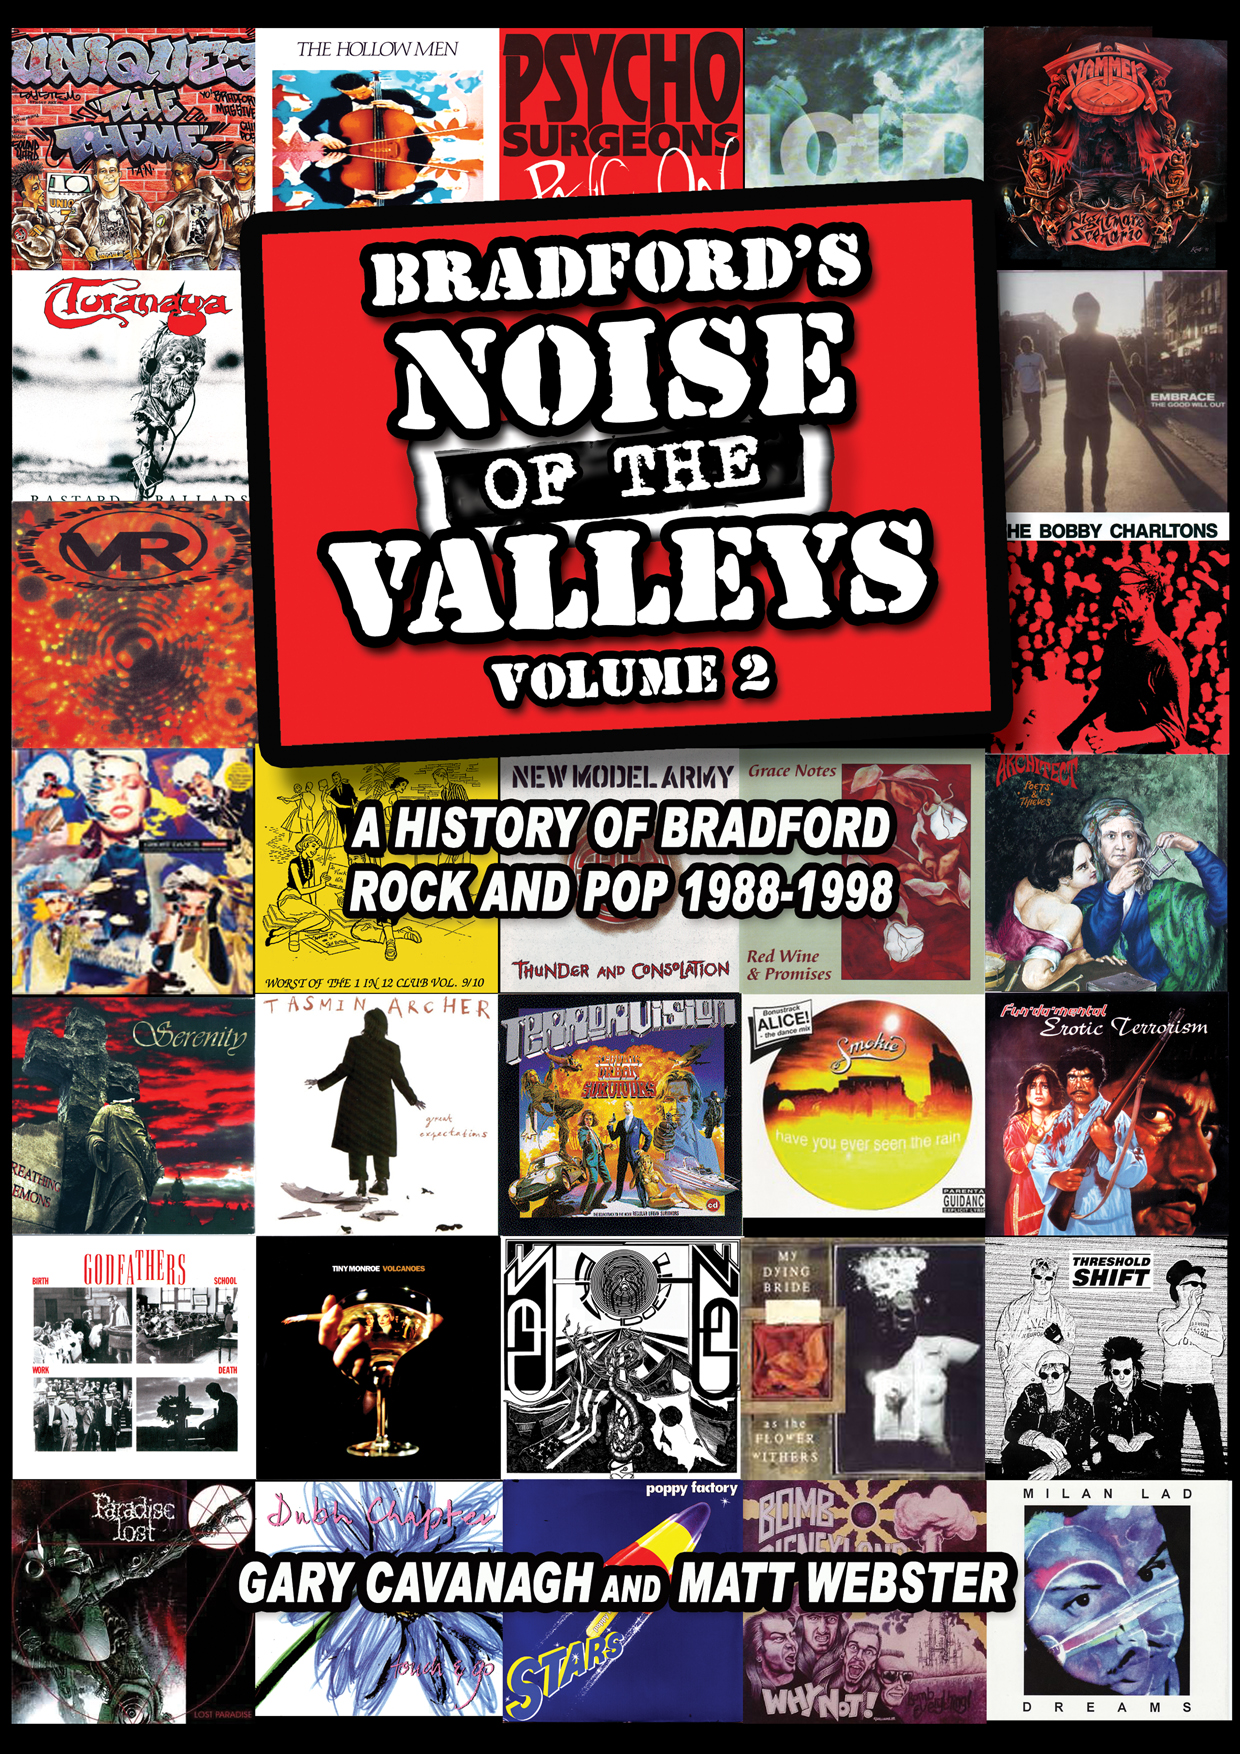 Bradford's Noise Of The Valleys Volume 2 cover